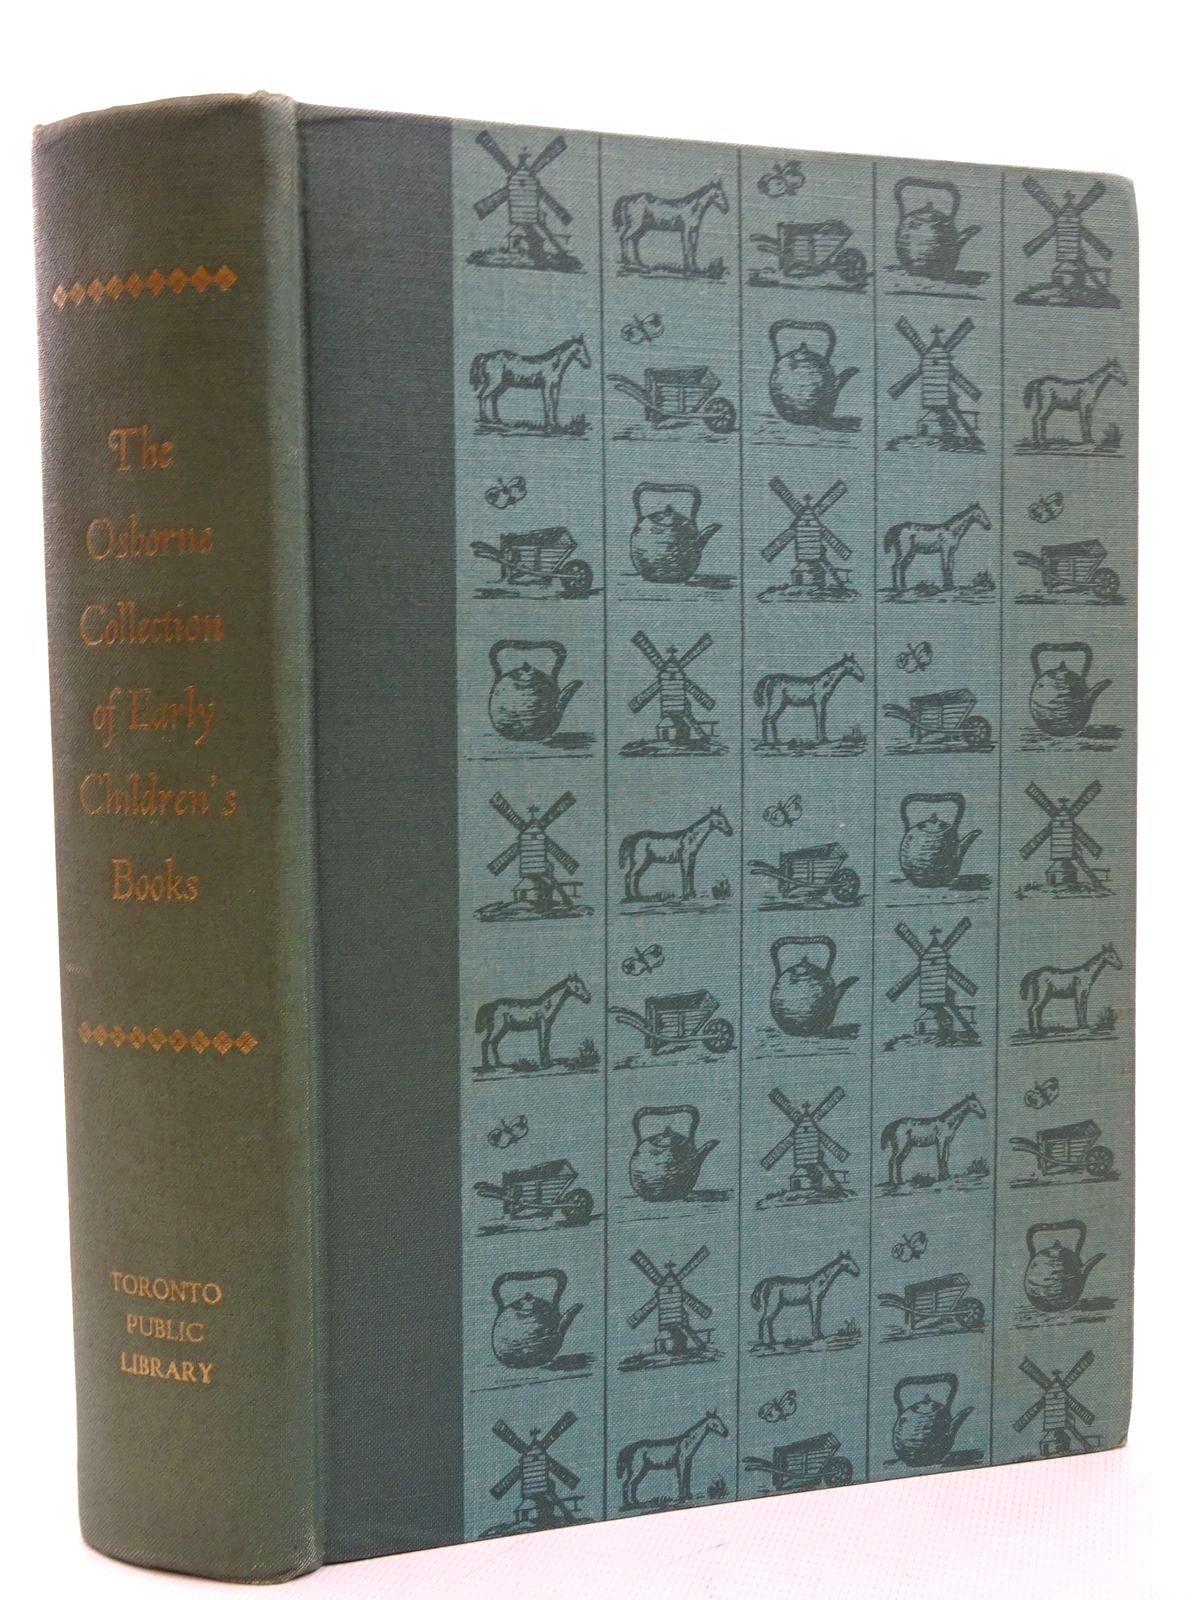 Photo of THE OSBORNE COLLECTION OF EARLY CHILDREN'S BOOKS 1566-1910 A CATALOGUE